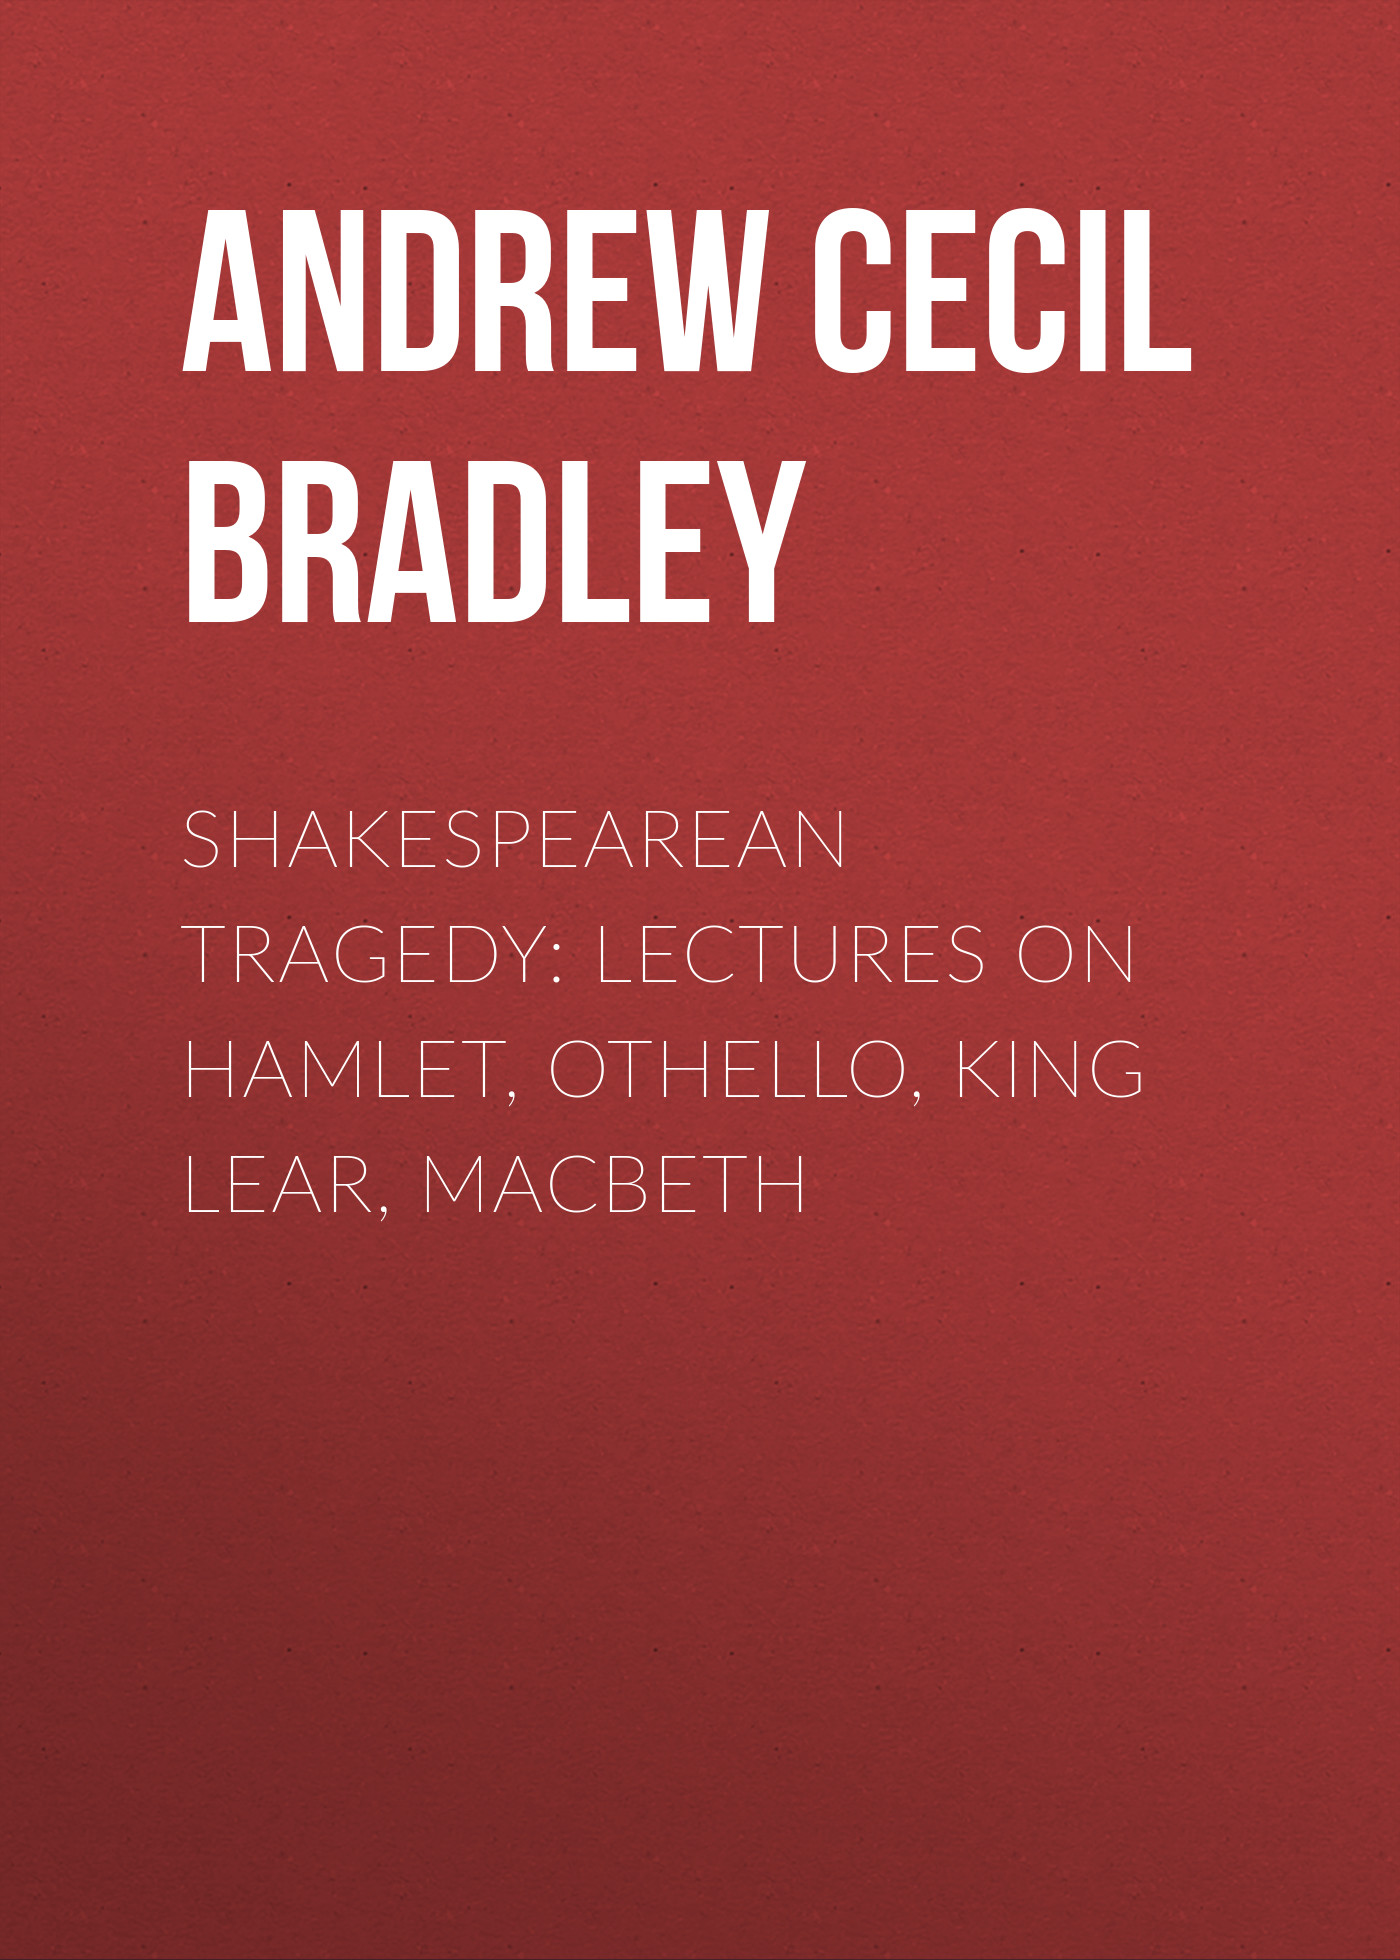 Andrew Cecil Bradley Shakespearean Tragedy: Lectures on Hamlet, Othello, King Lear, Macbeth